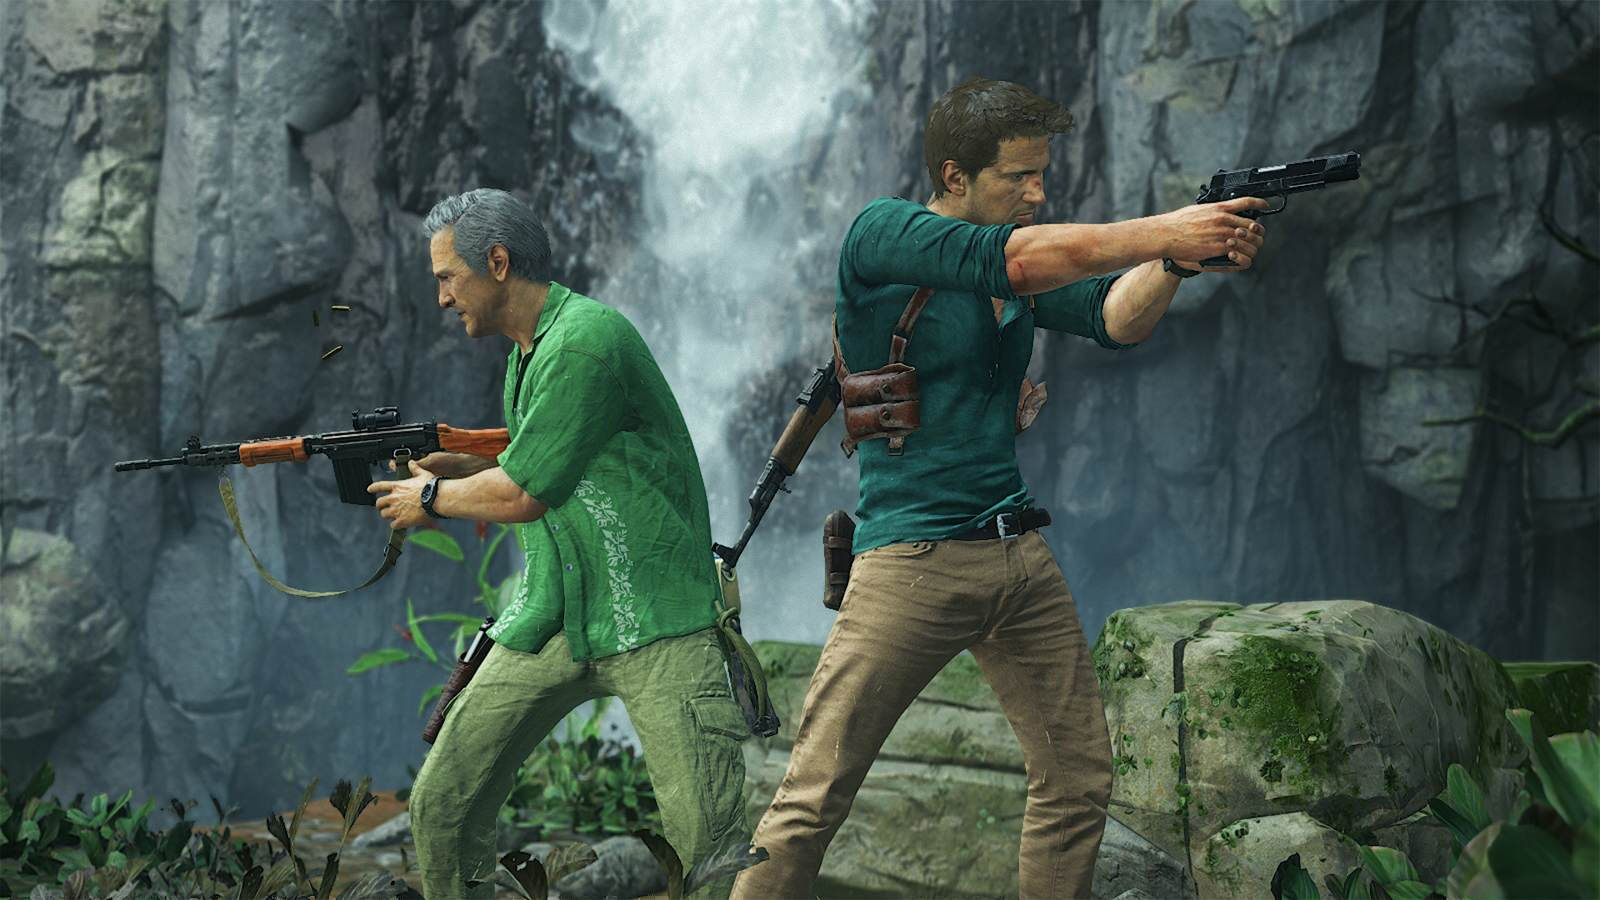 Uncharted 4 May Be Getting UK Exclusive Multiplayer Beta 22335574340 9f97f766e6 o